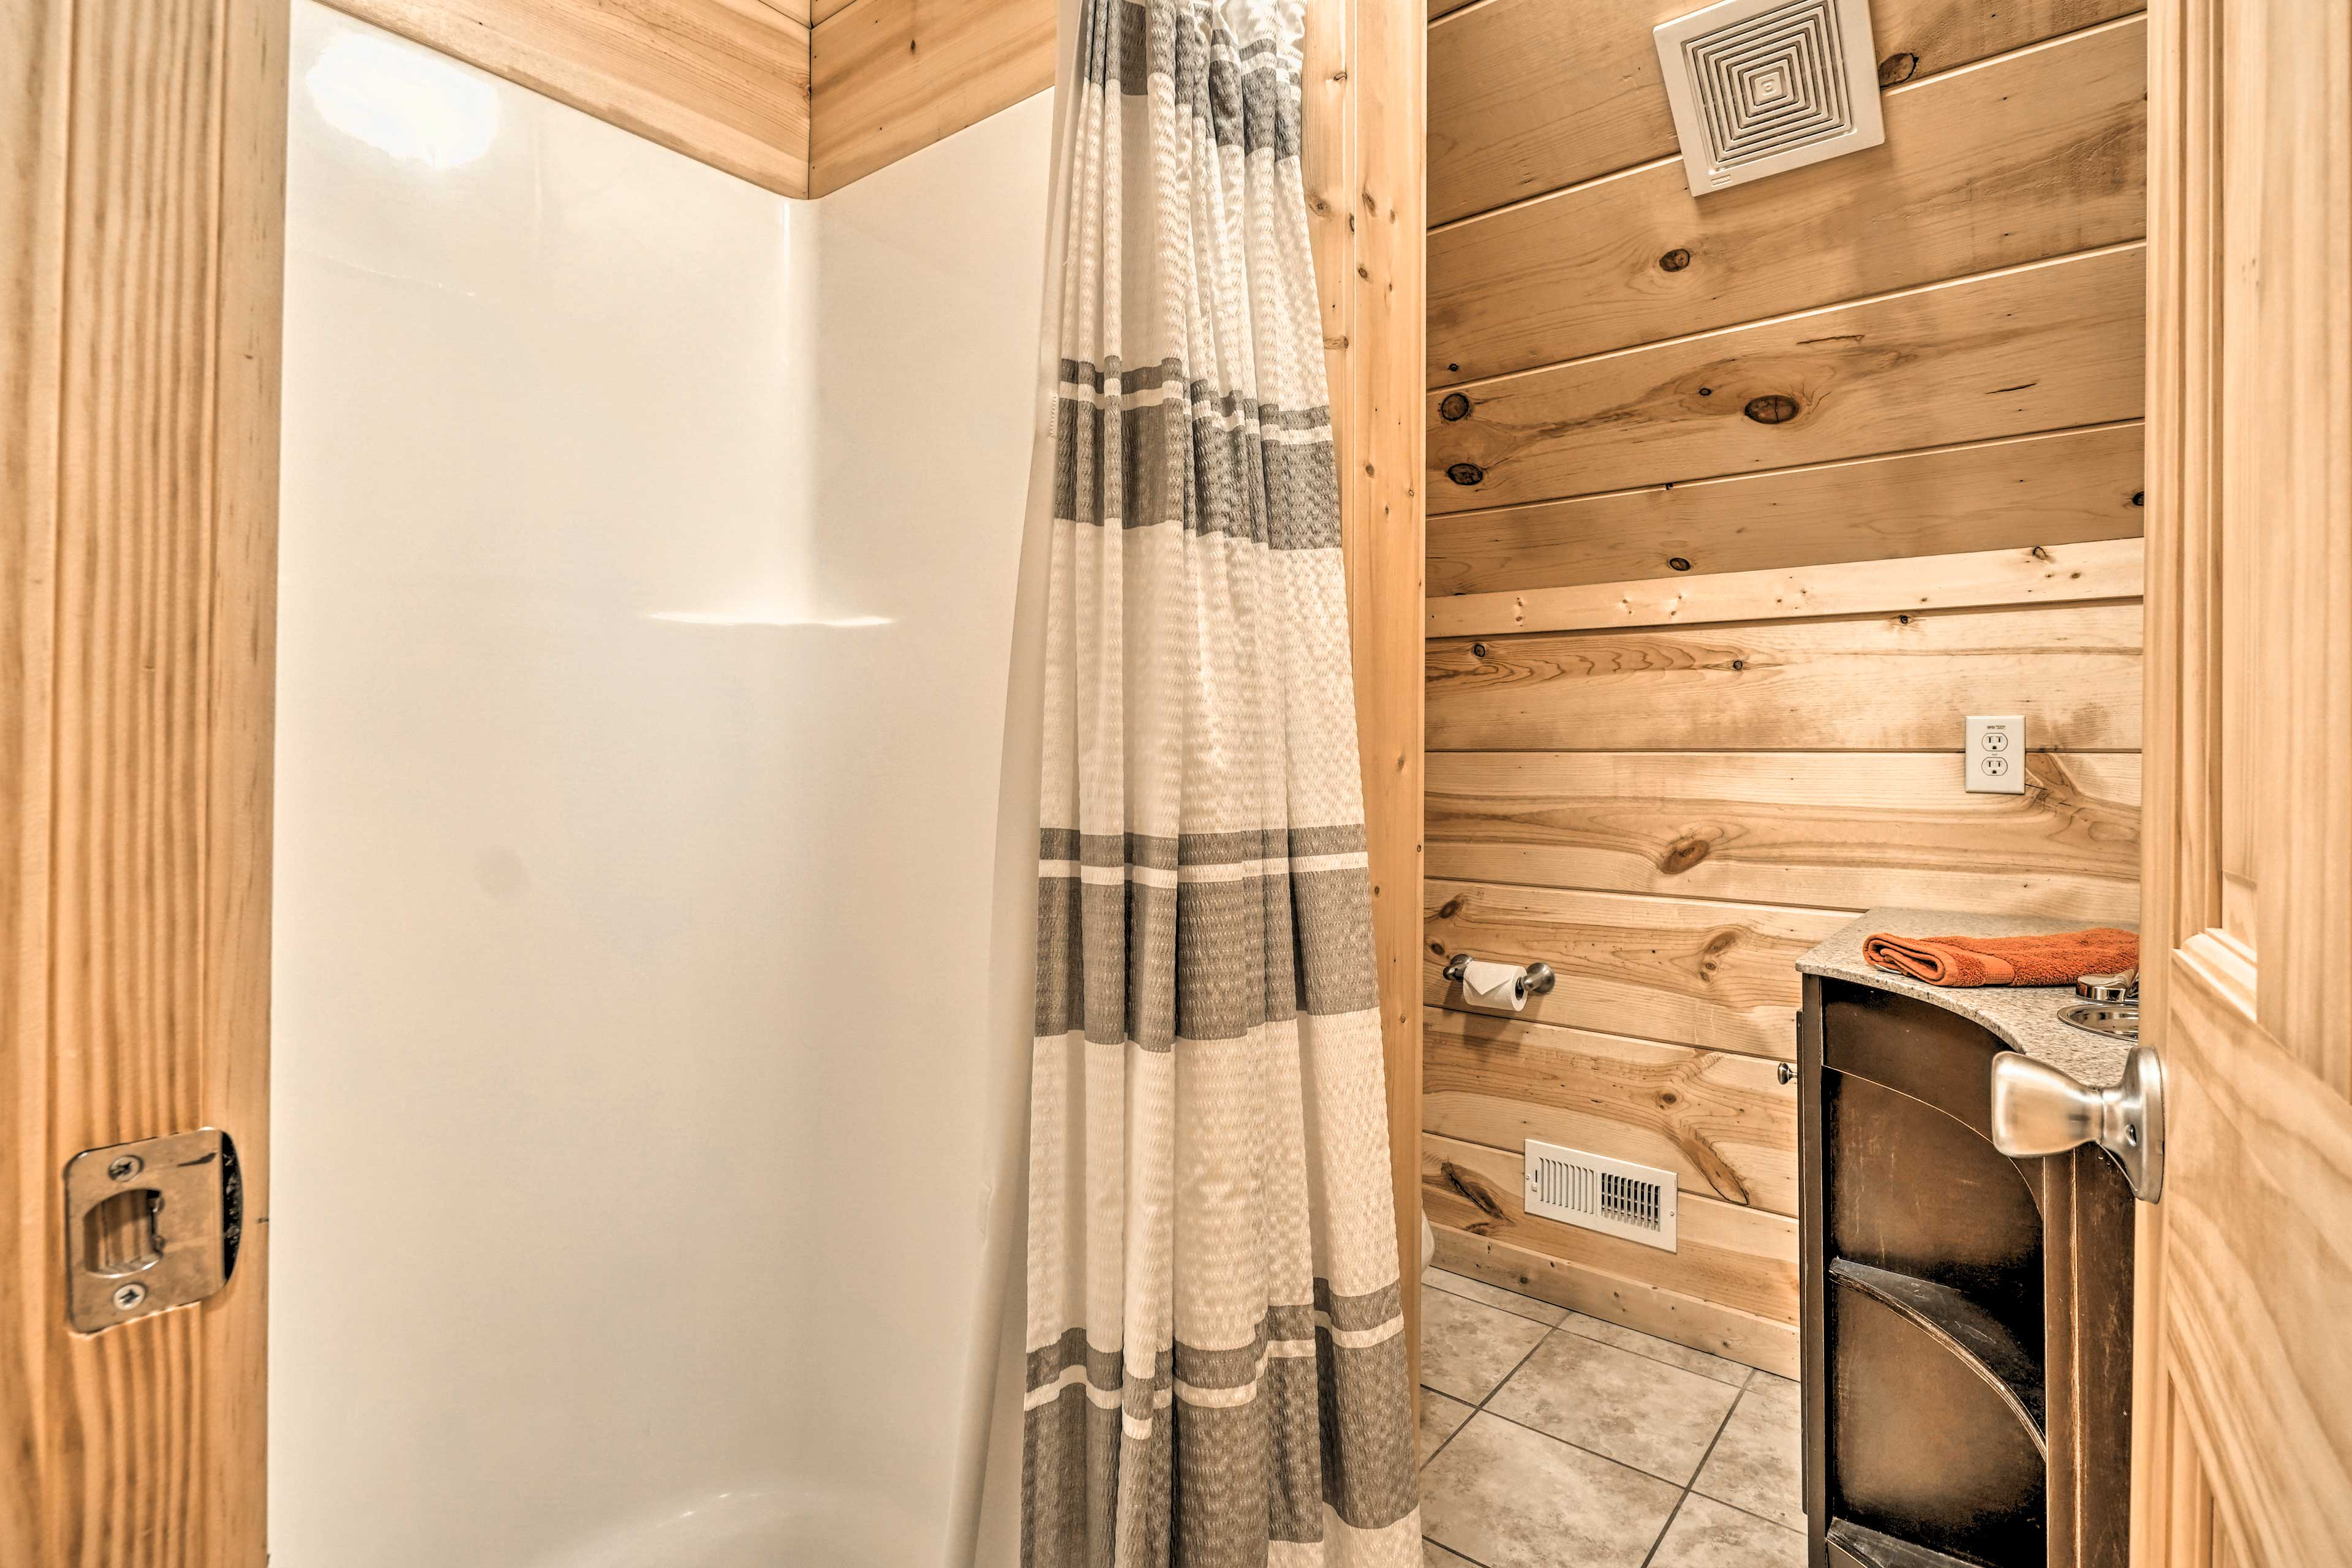 There are 3 bathrooms in this cabin.